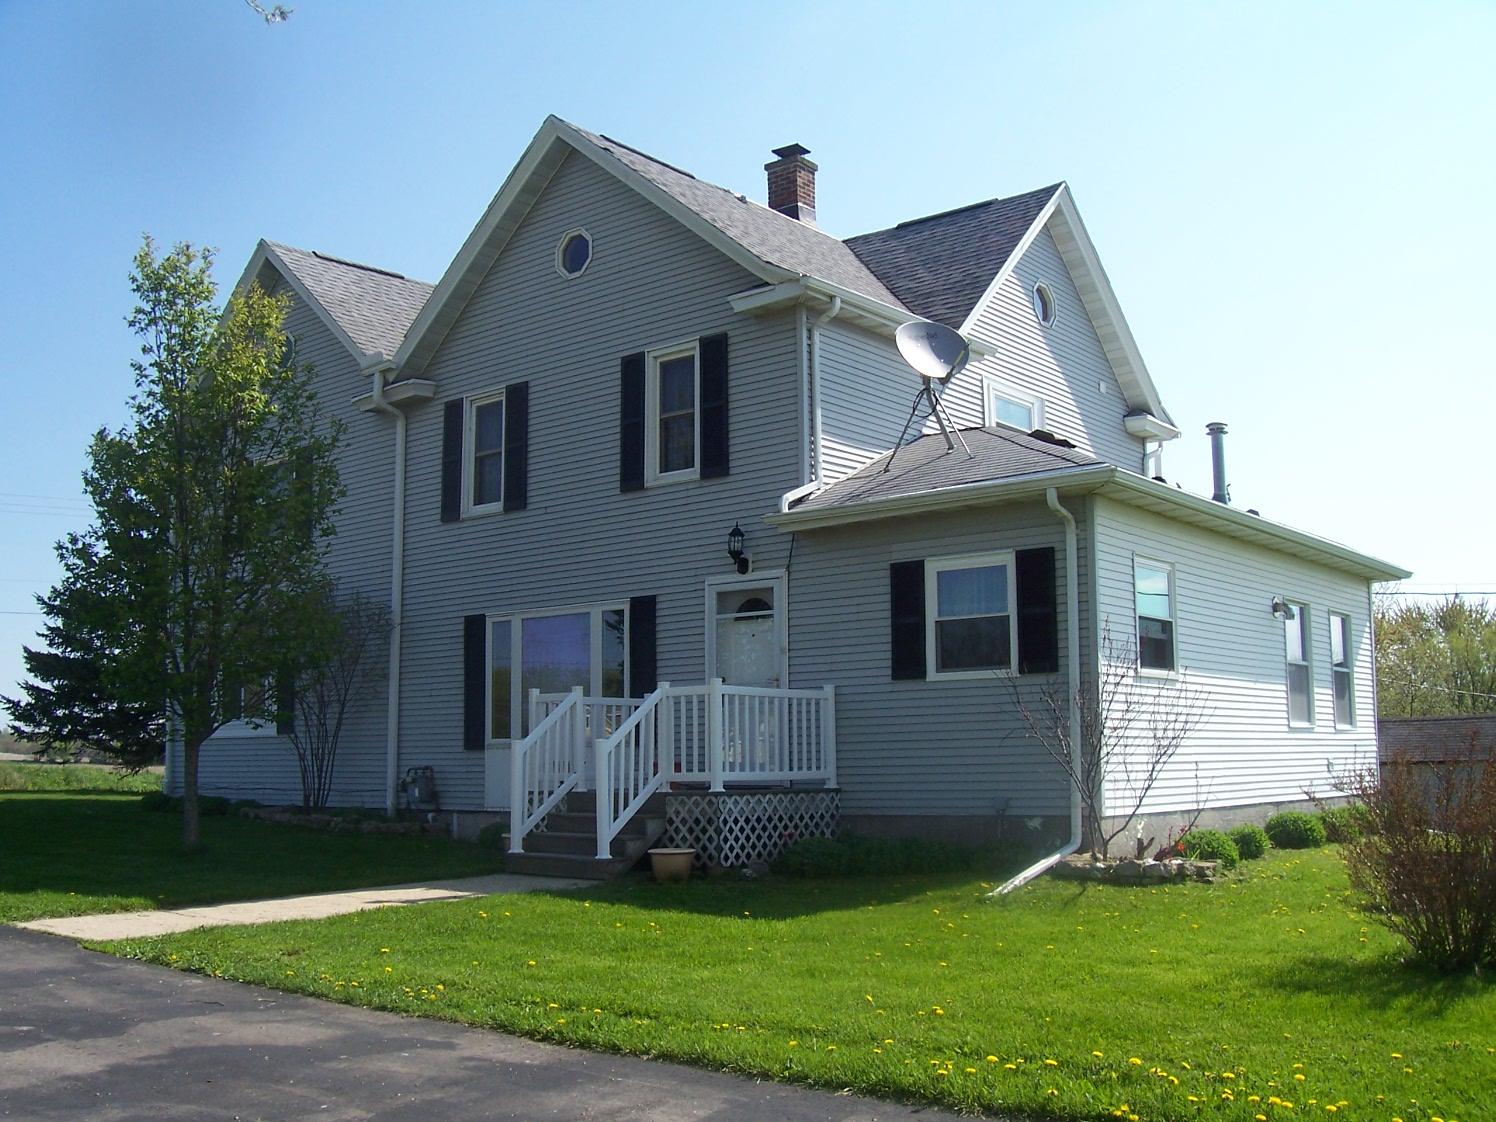 W2657 Ore Rd, Hubbard, Wisconsin 53035, 3 Bedrooms Bedrooms, 9 Rooms Rooms,2 BathroomsBathrooms,Single-Family,For Sale,Ore Rd,1625543